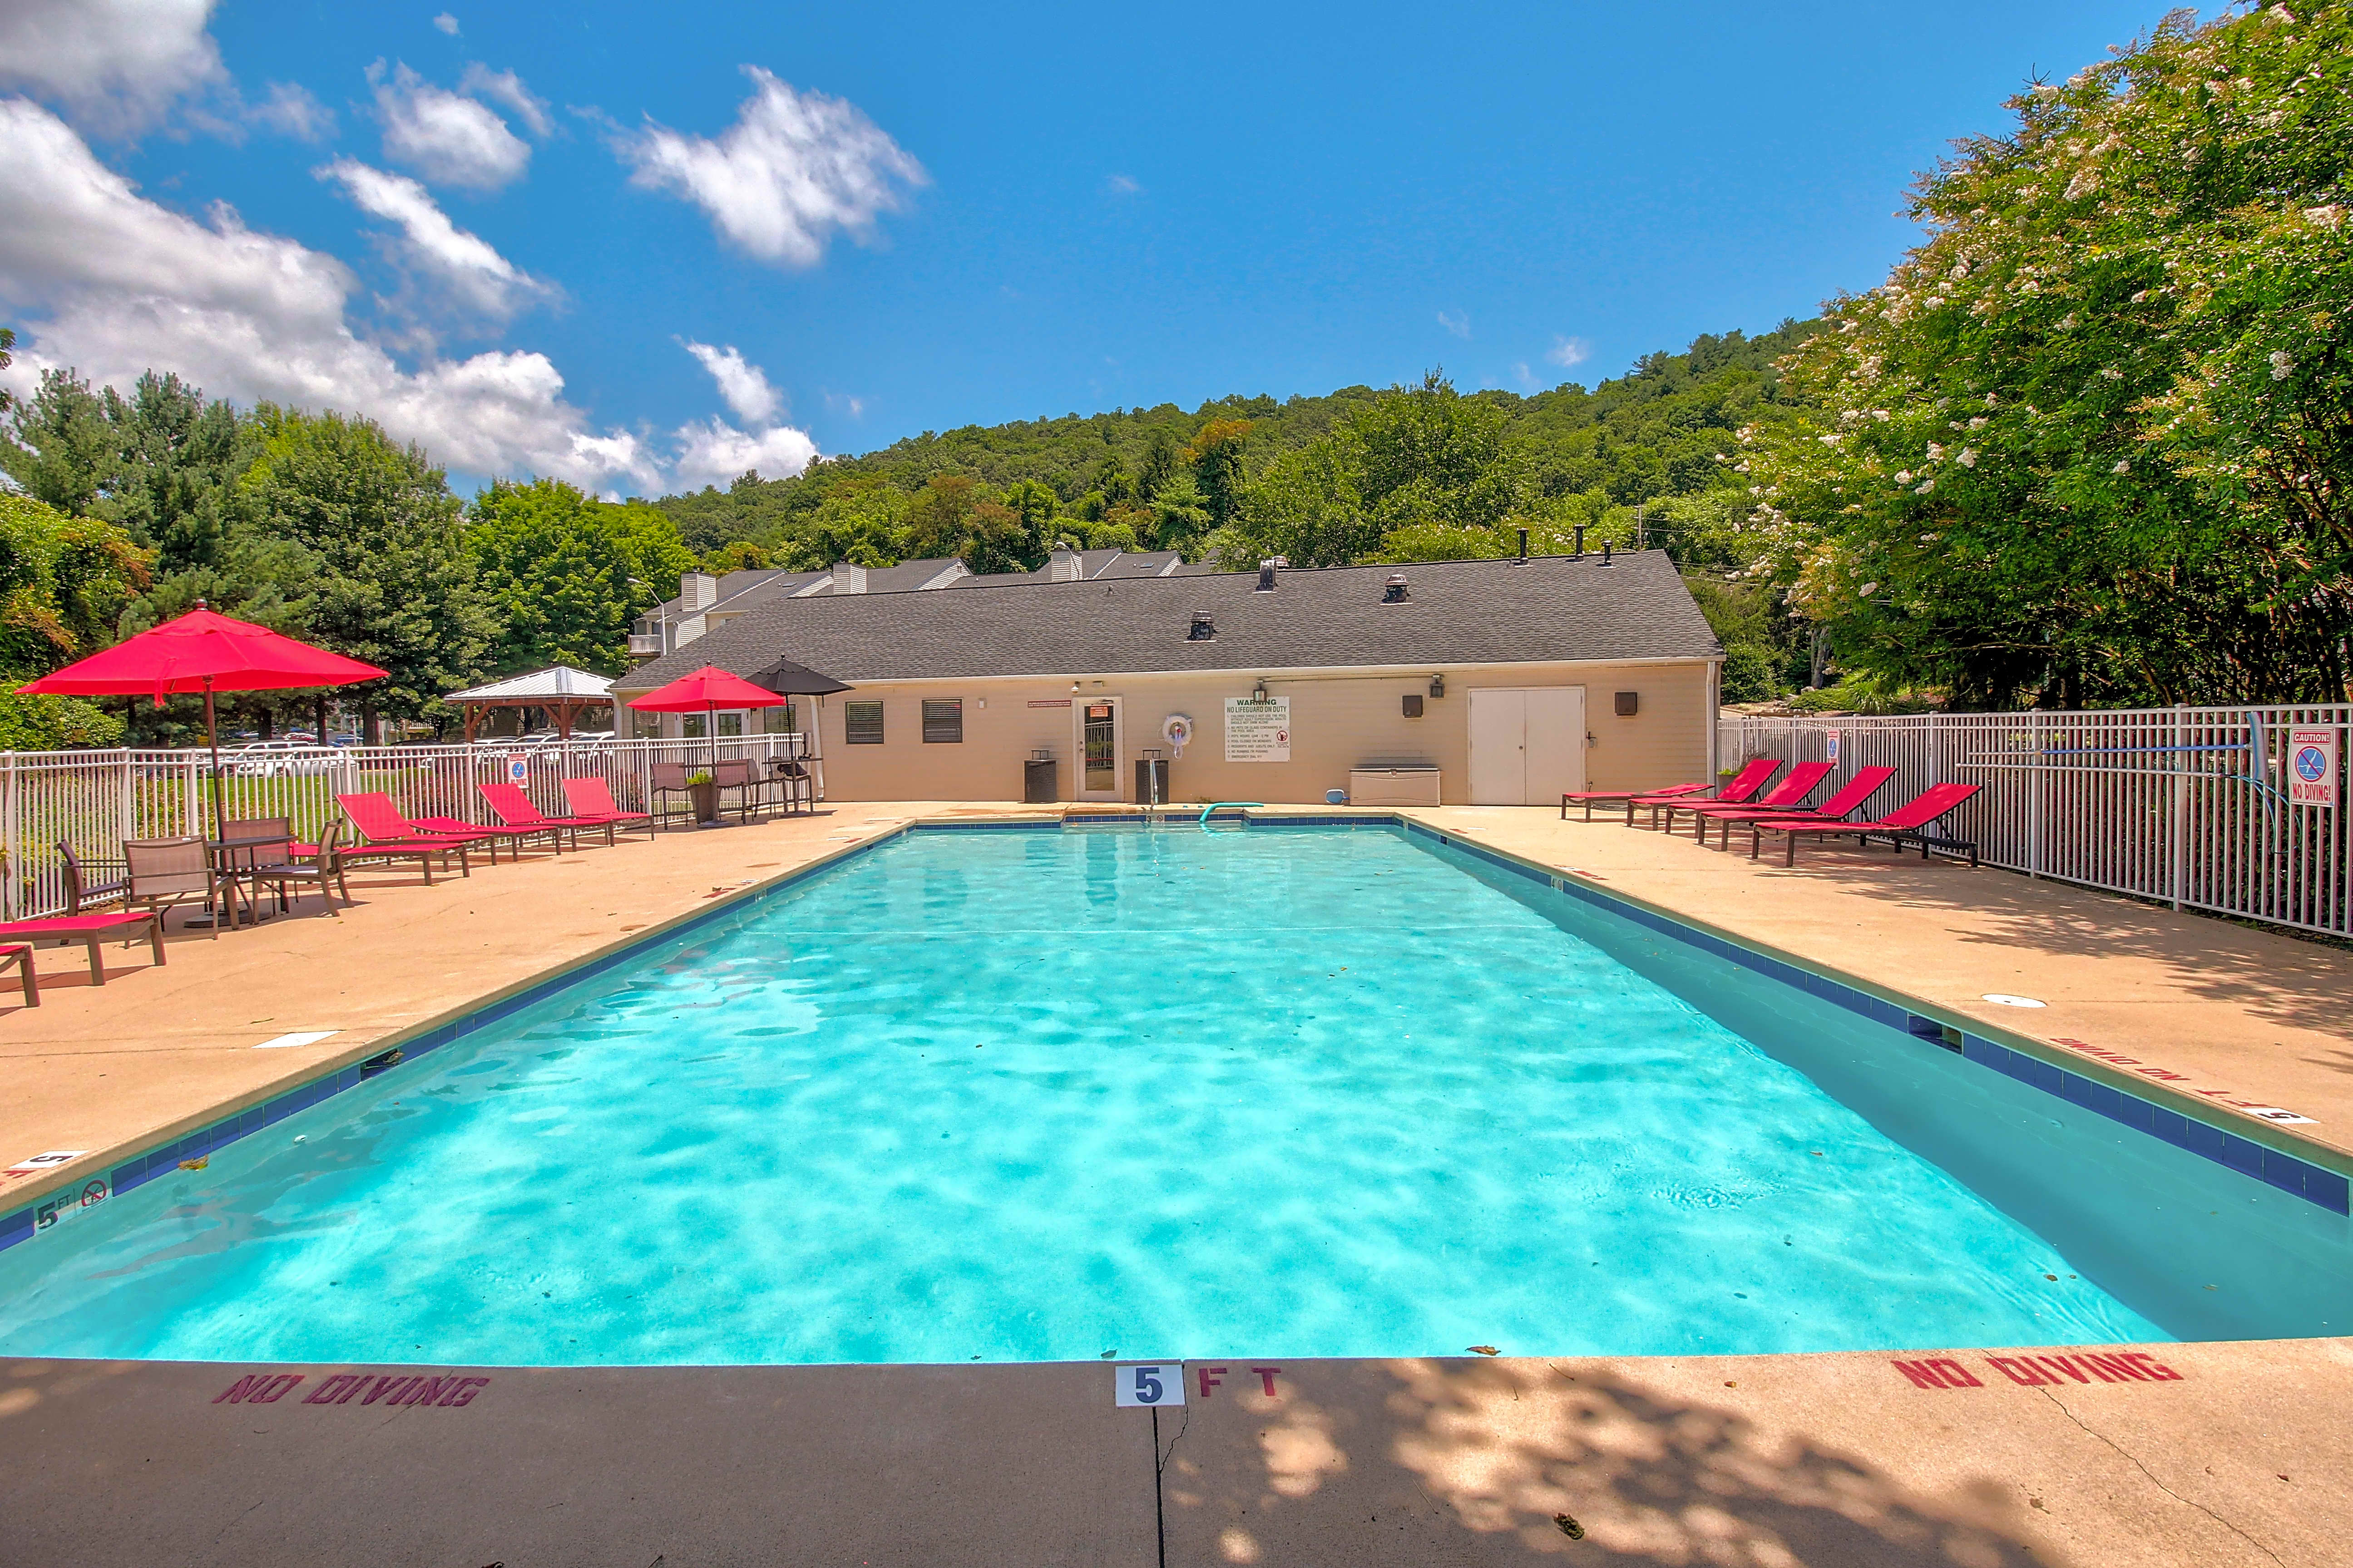 Apartments Near Montreat Woodberry for Montreat College Students in Montreat, NC